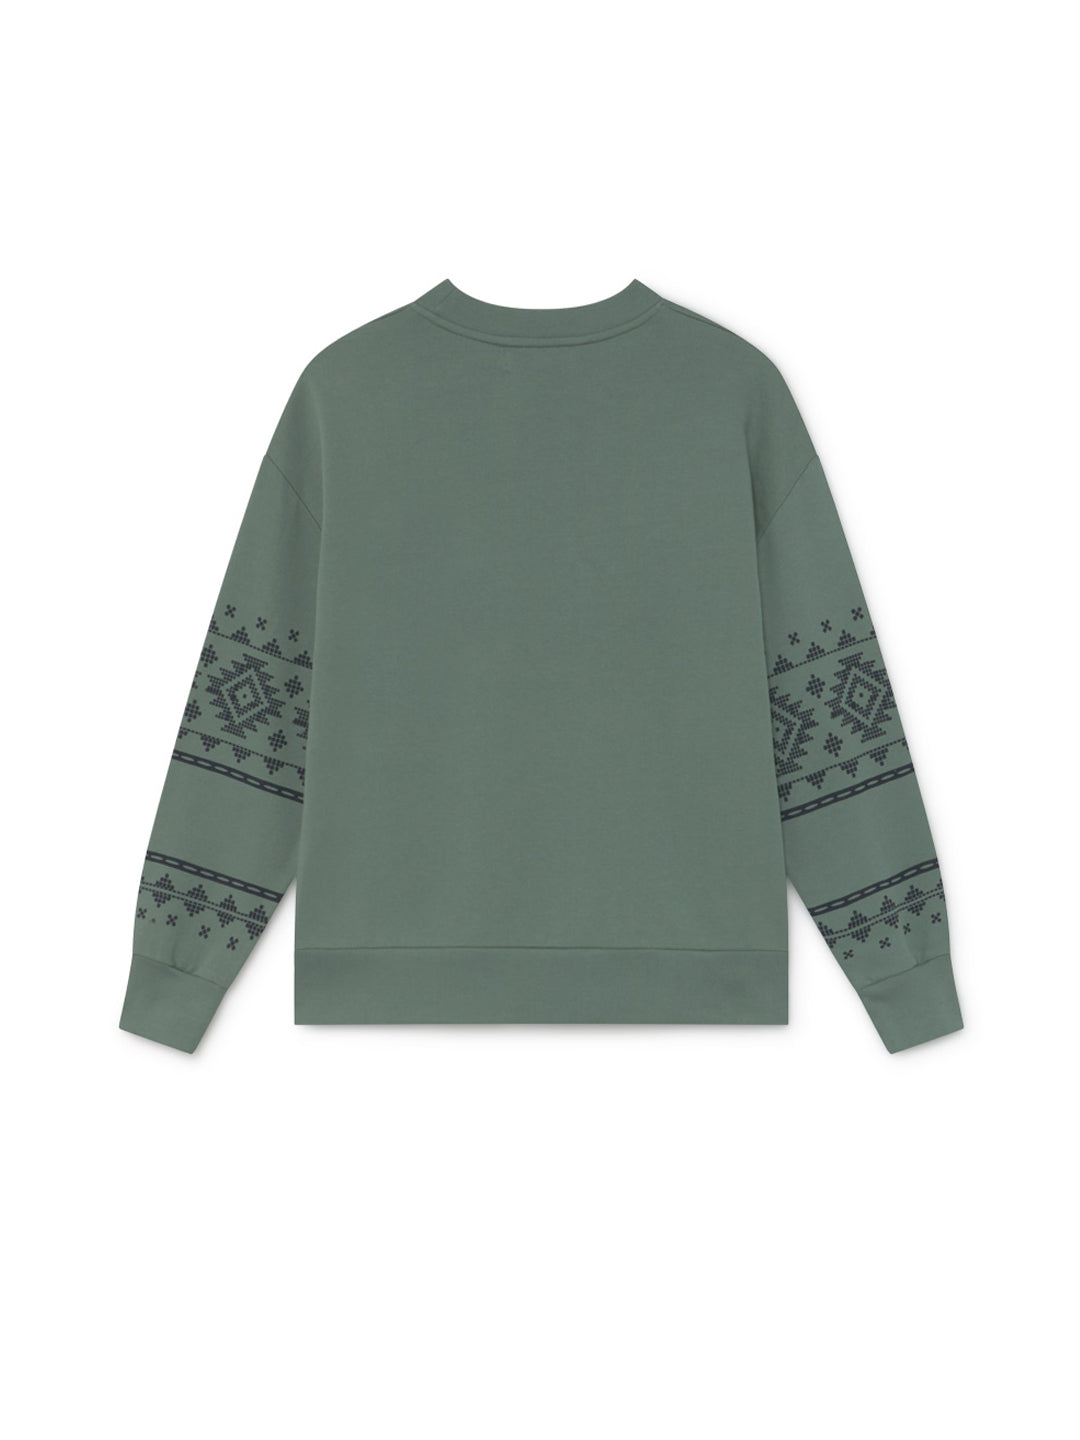 TWOTHIRDS Womens Sweat: Madeira - Washed Green back